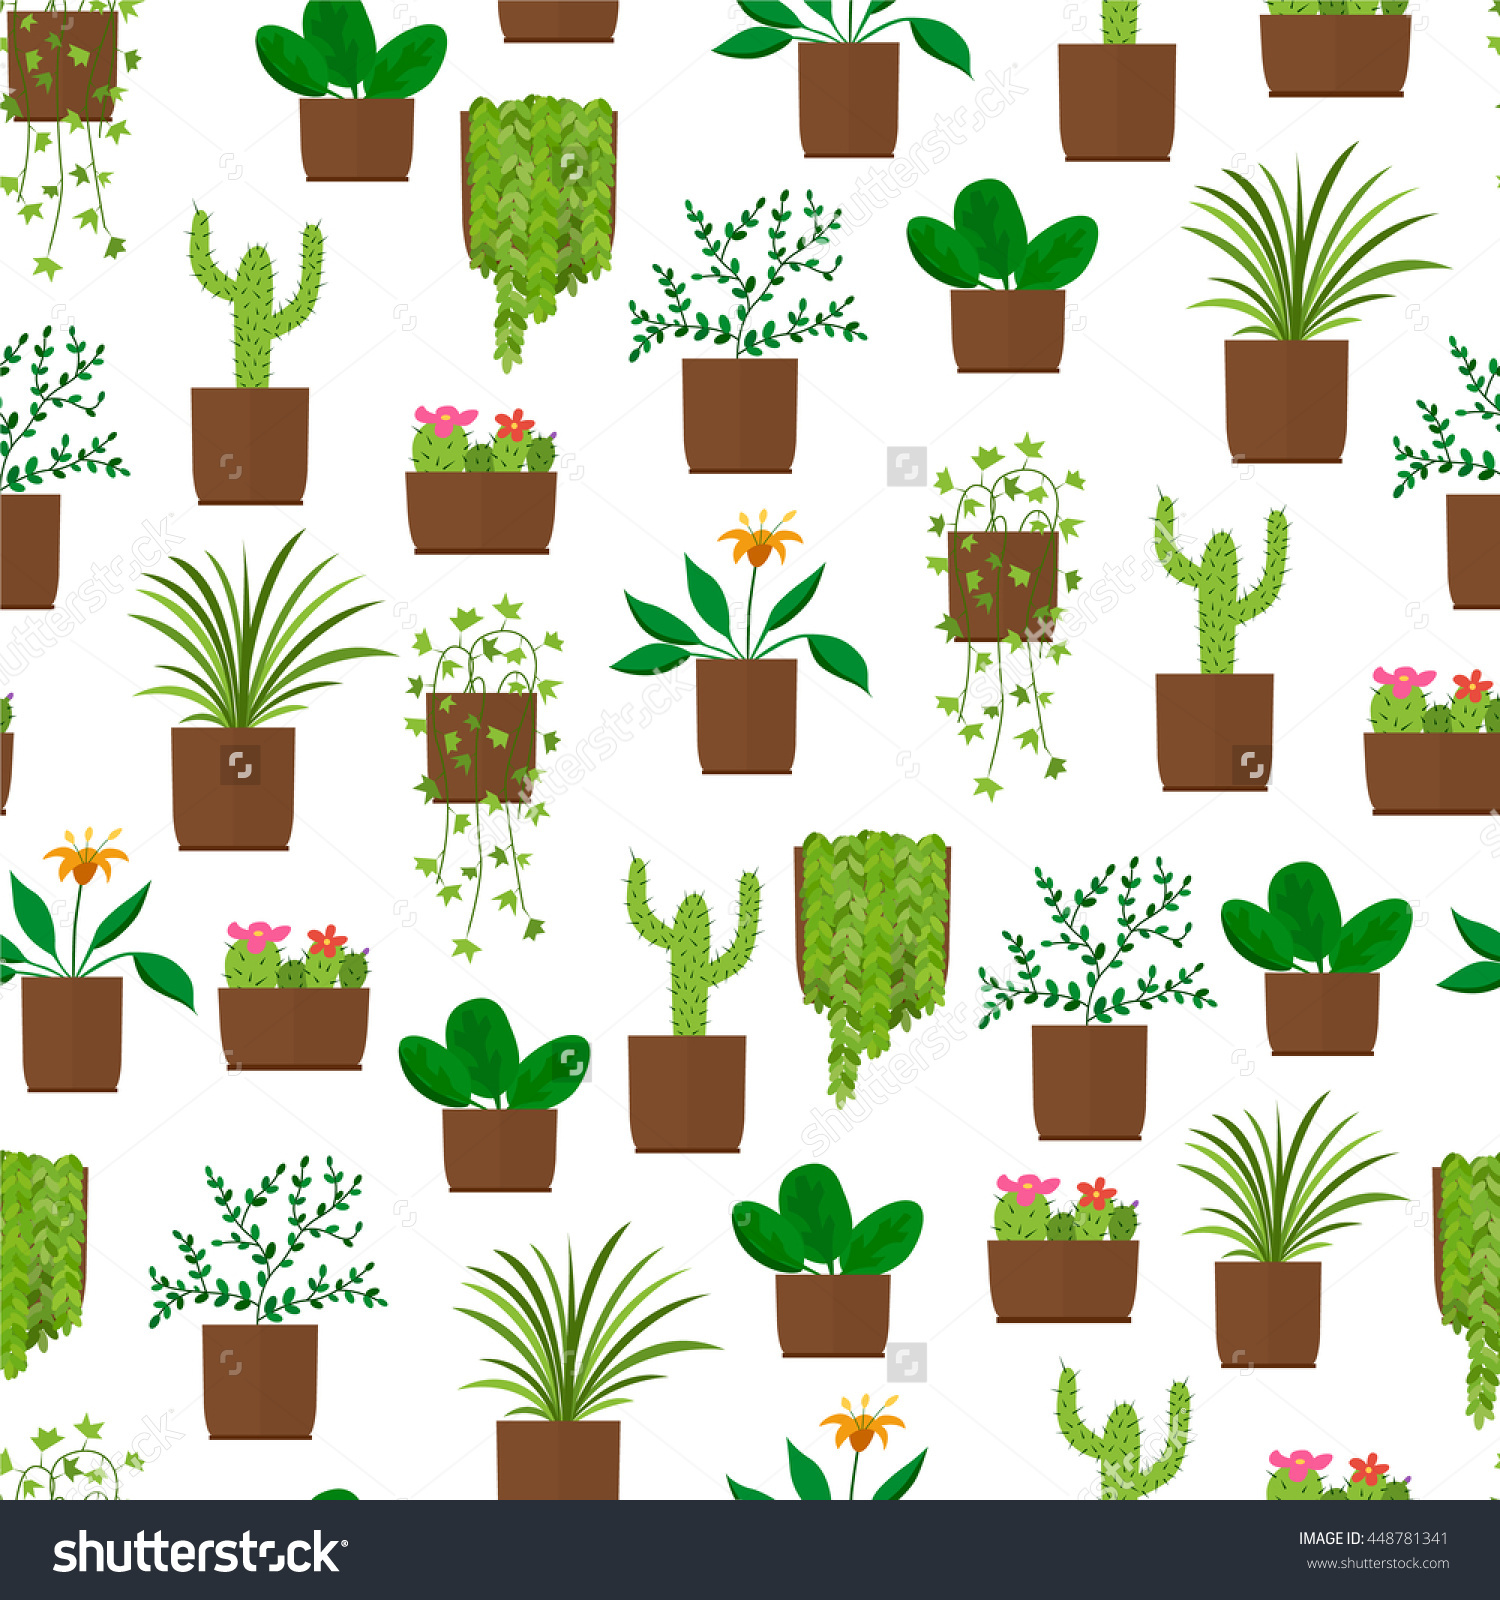 Blooming palm tree clipart #7